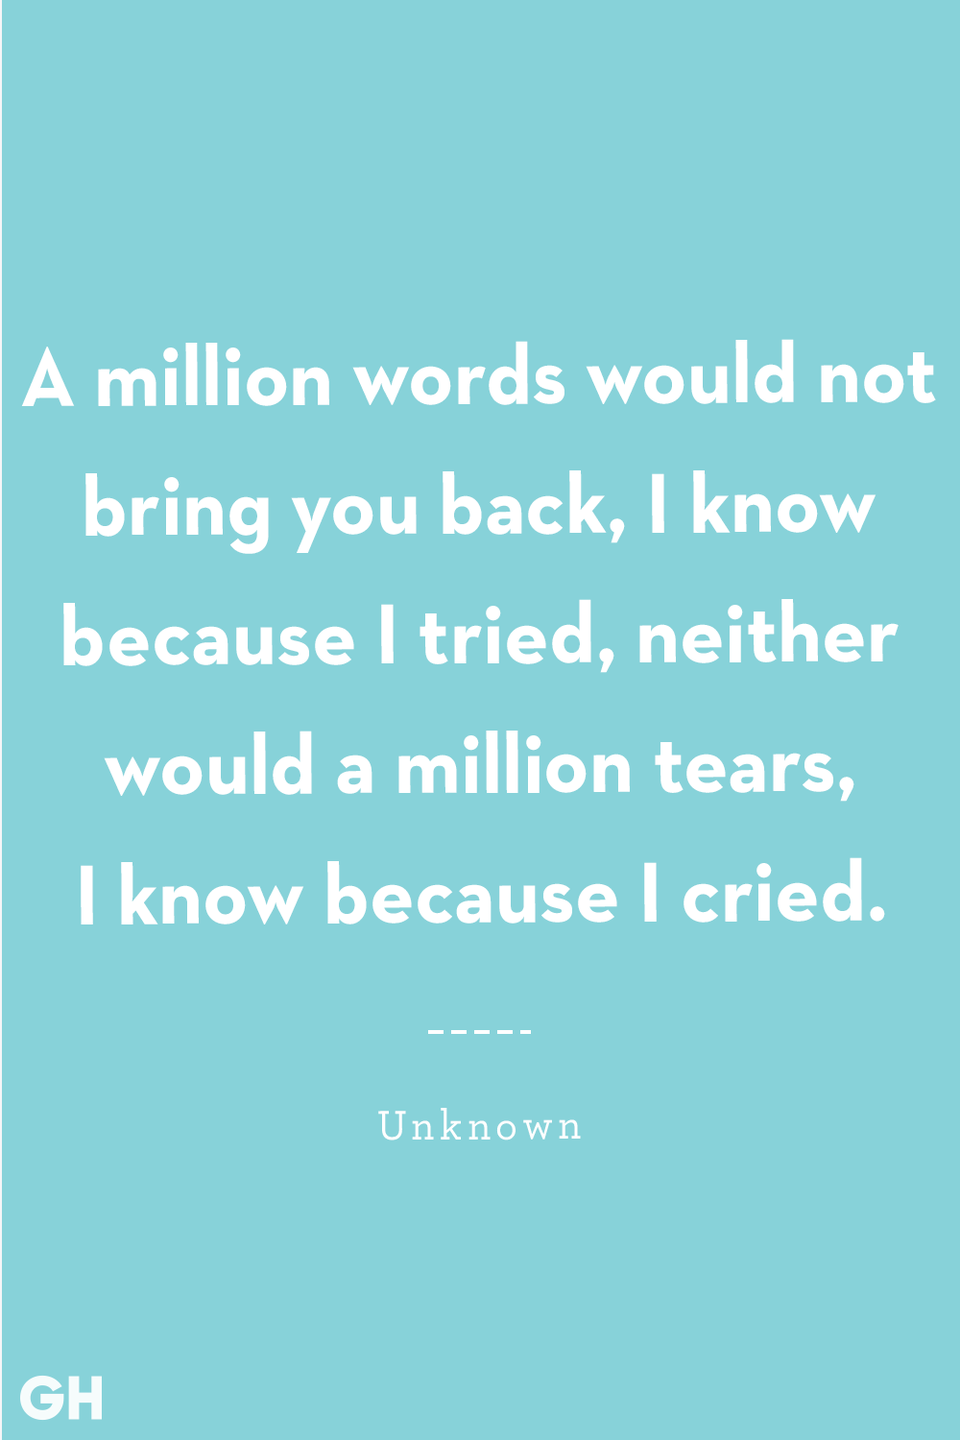 <p>A million words would not bring you back, I know because I tried, neither would a million tears, I know because I cried.</p>